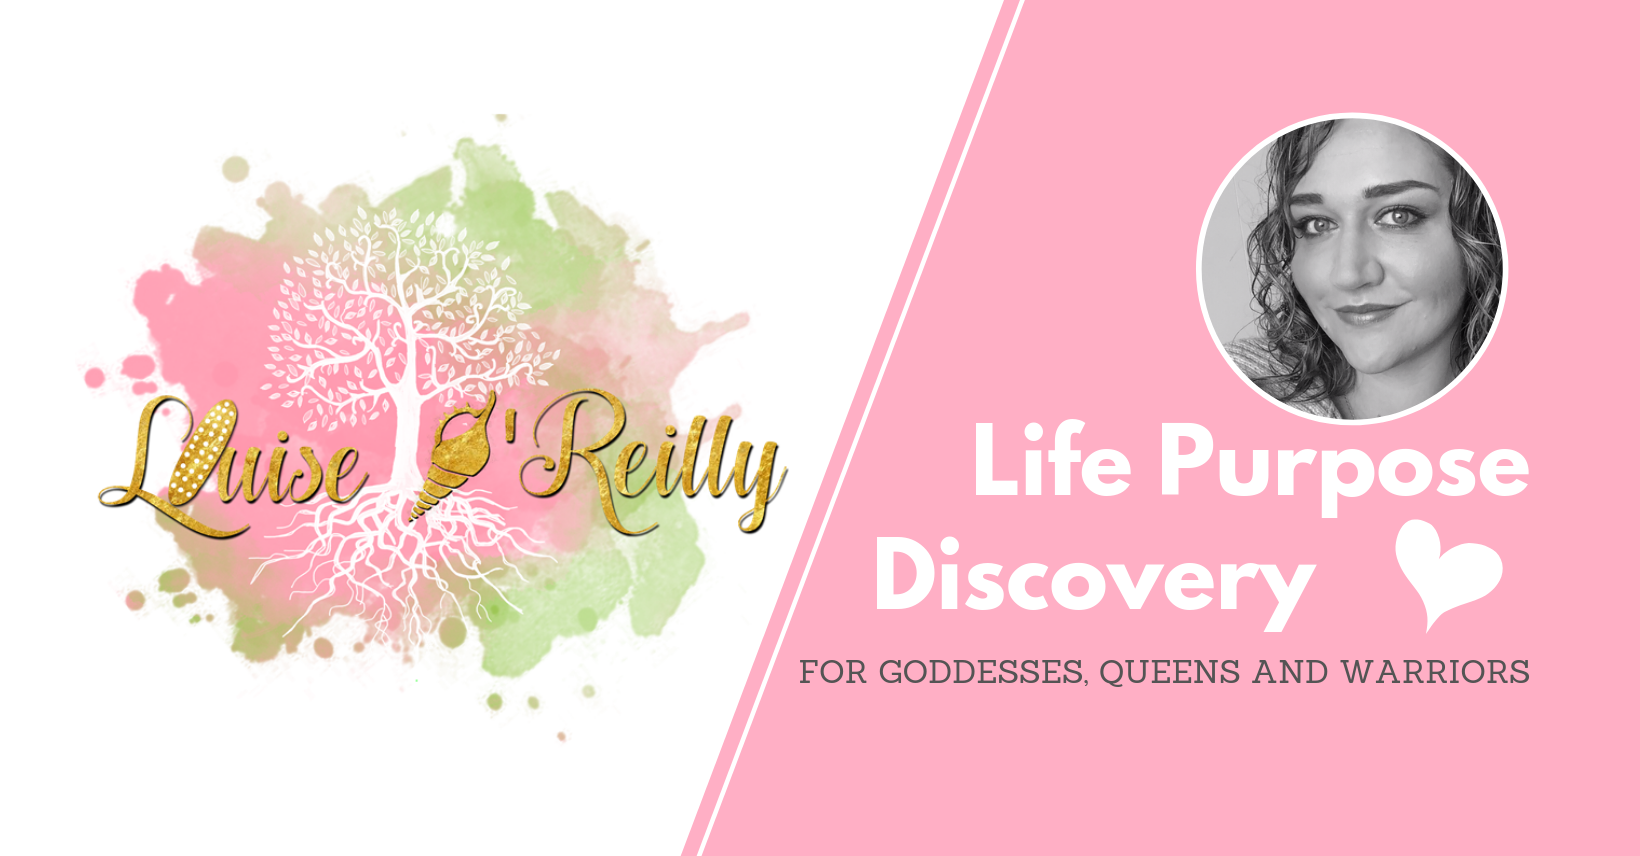 Life Purpose Discovery facebook cover image.png